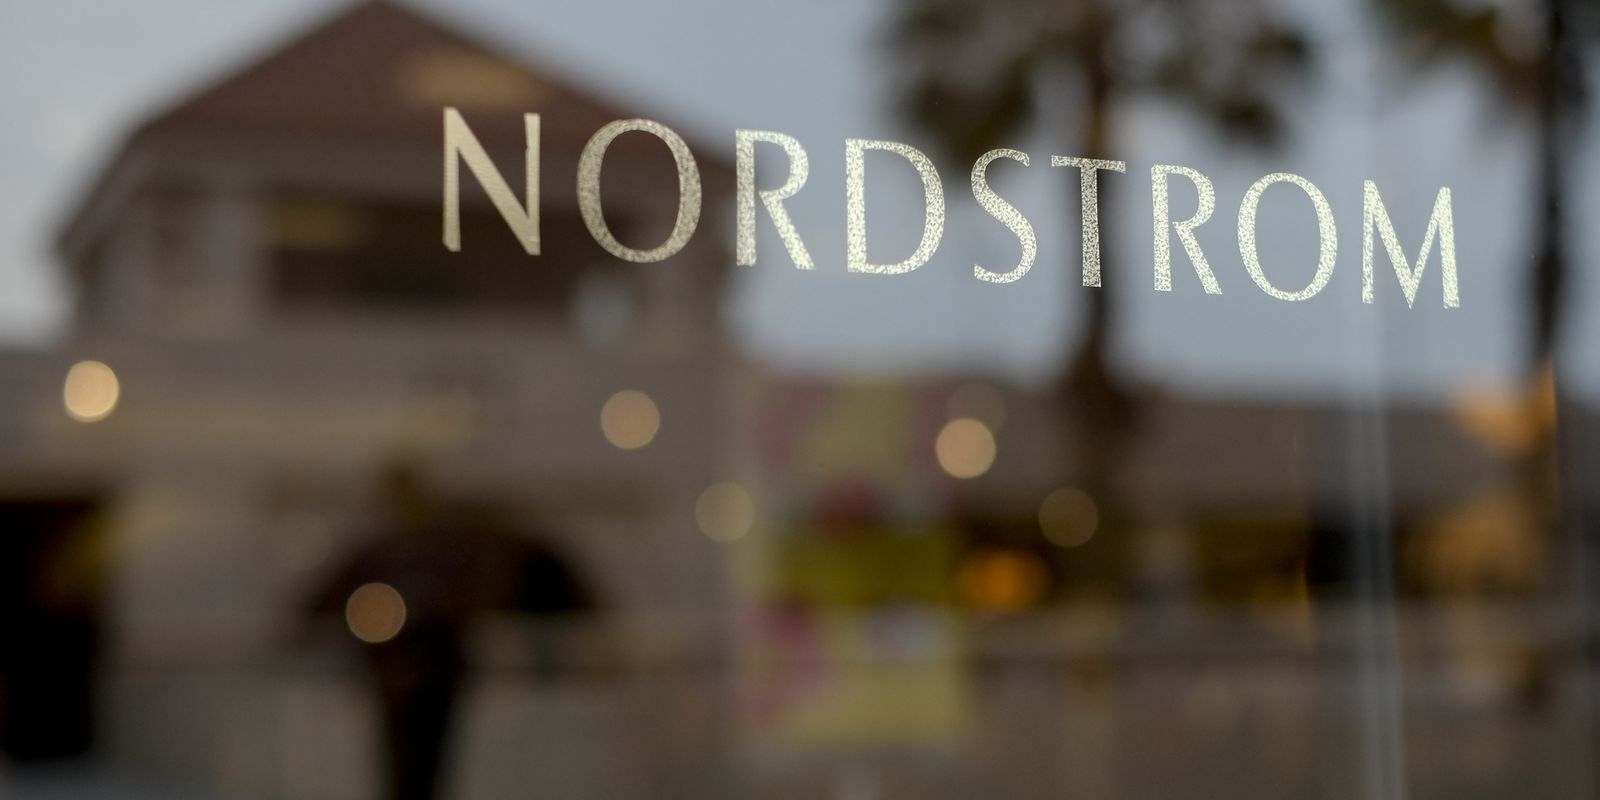 Nordstrom coupon 20 off get a 20 off nordstrom promo code online nordstrom coupon 20 off get a 20 off nordstrom promo code online coupon codes fandeluxe Image collections